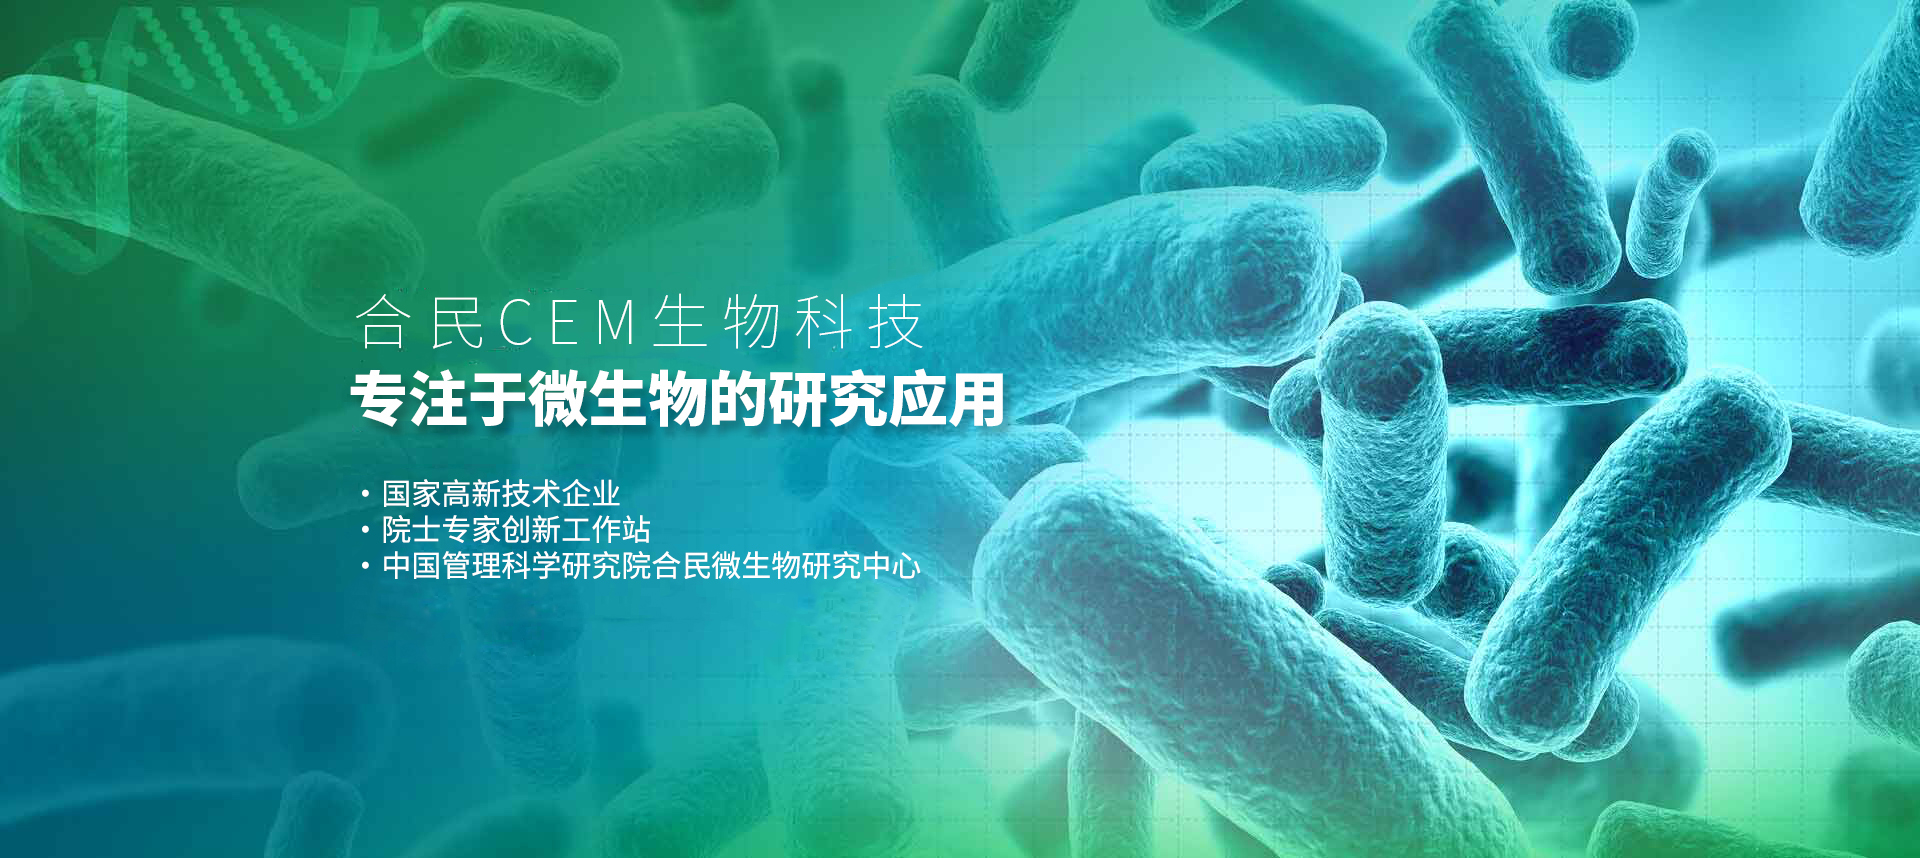 http://www.hemin-bio.com/data/upload/202011/20201109122518_358.jpg